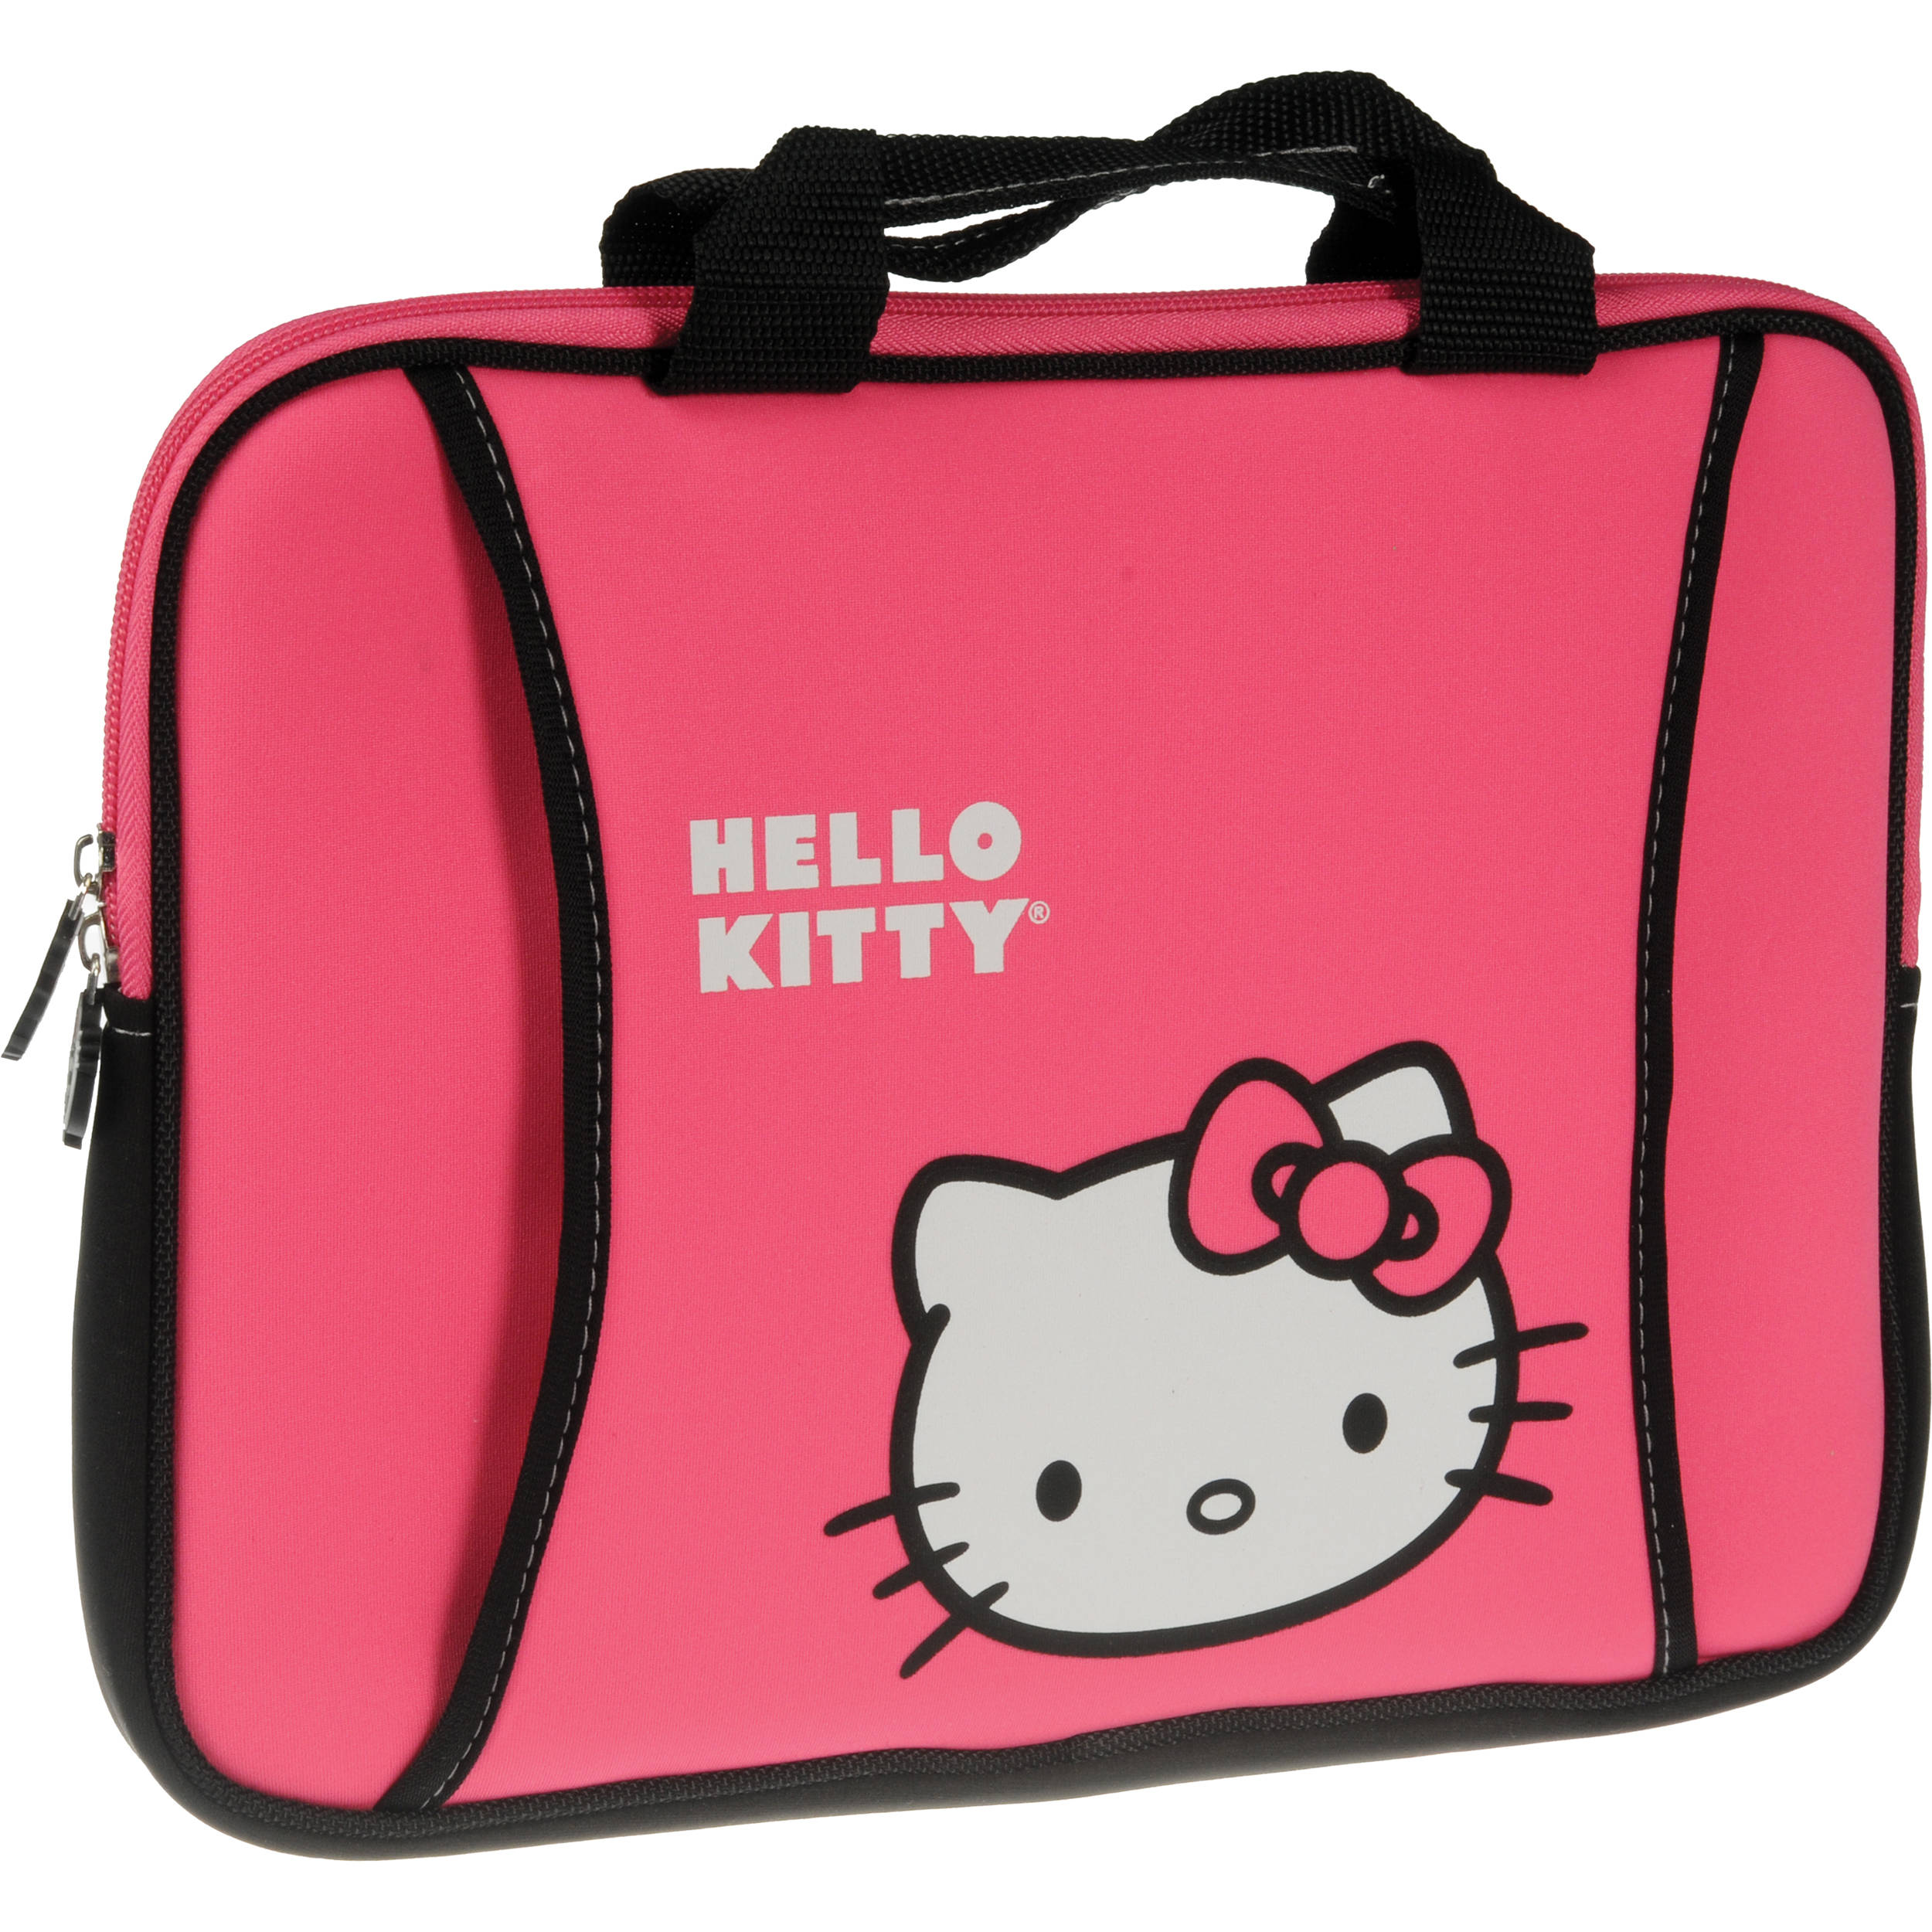 35cfb4e45 Hello Kitty Neoprene Mini Case for Notebook with Screen up to 12